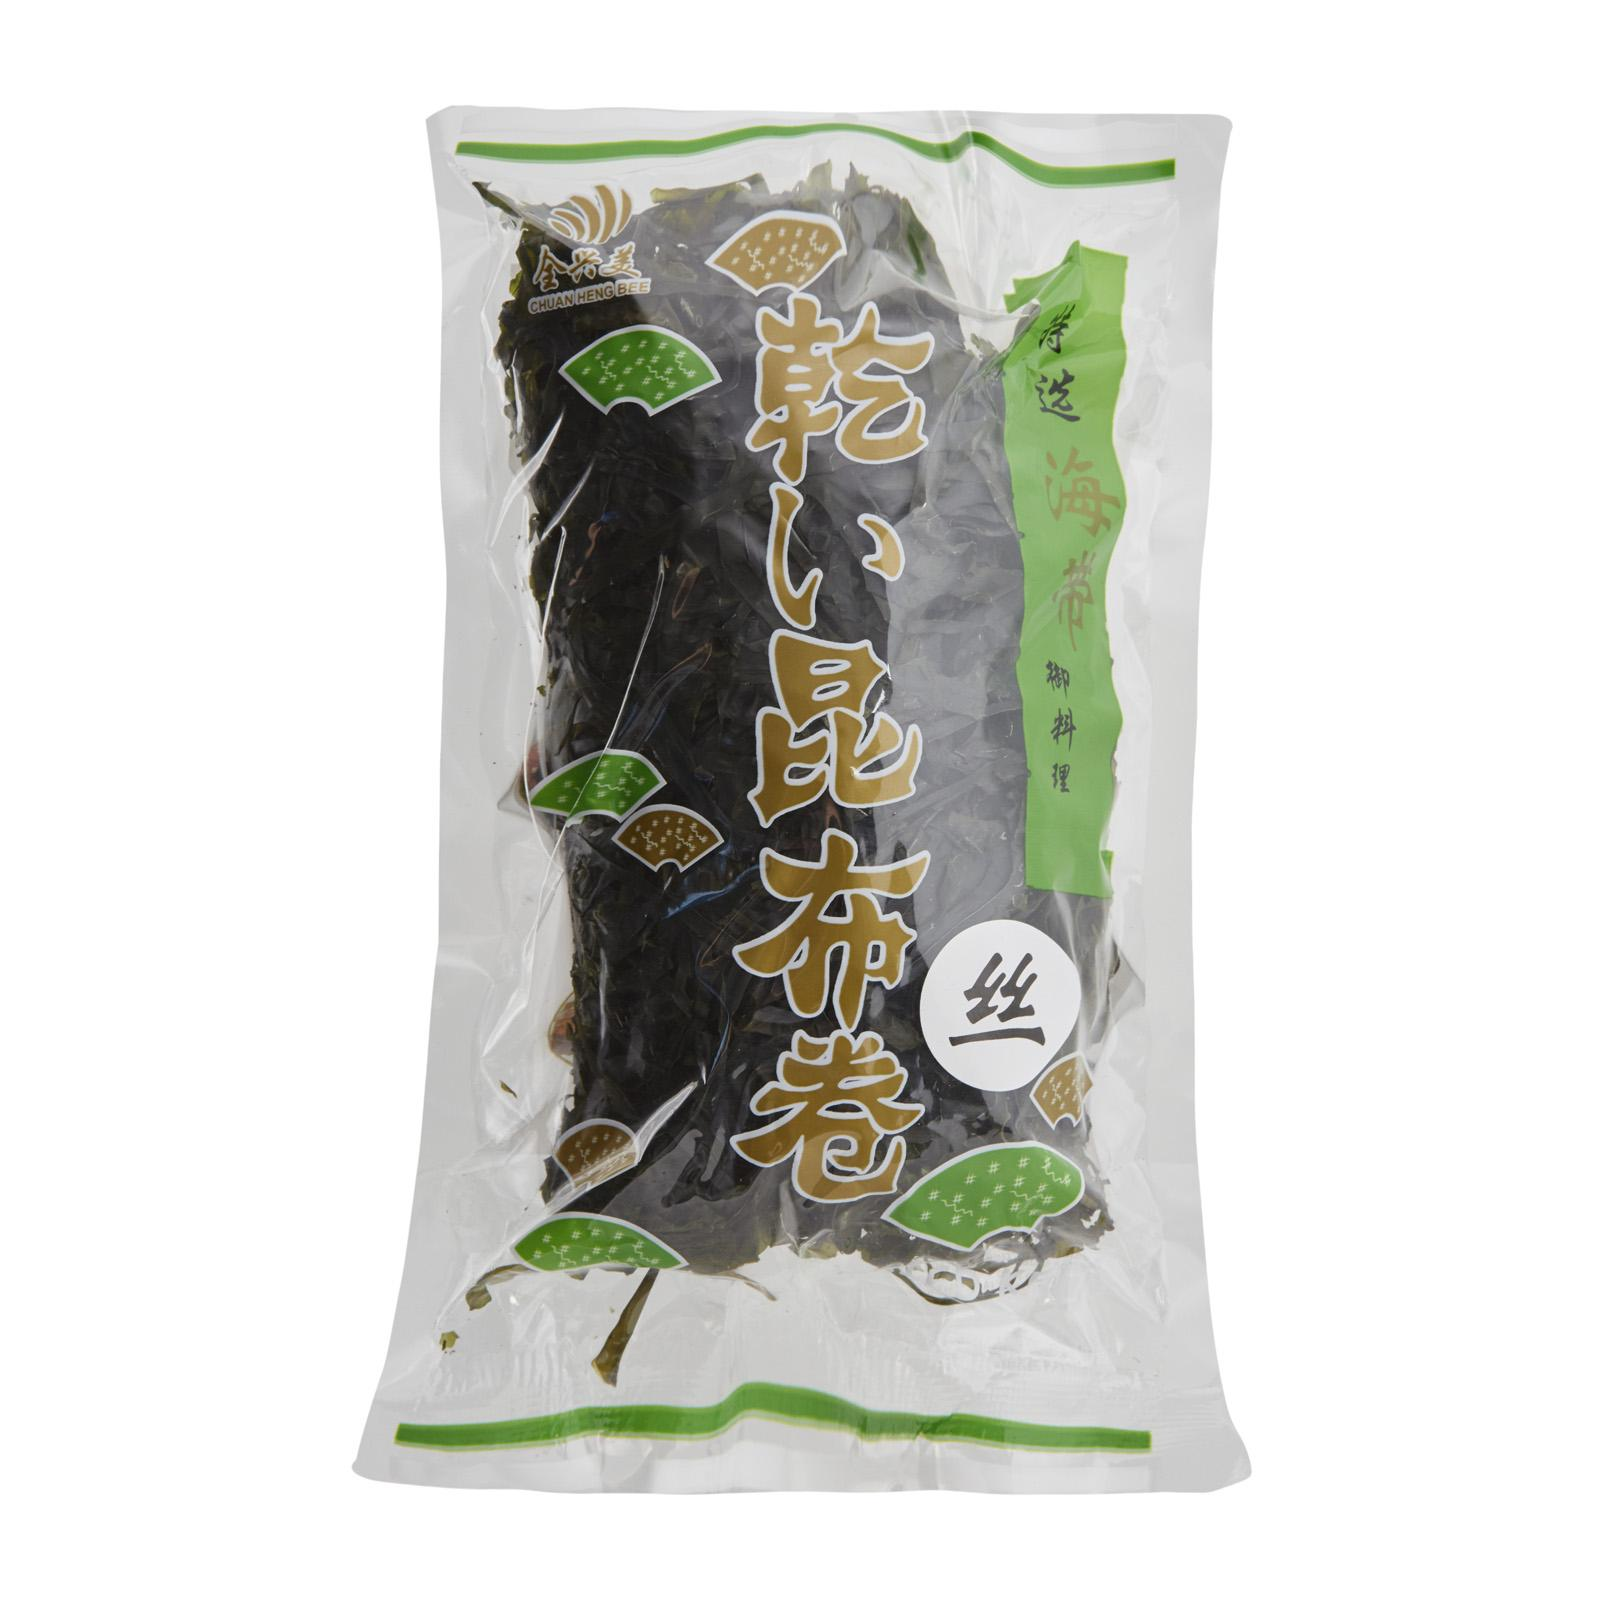 Chuan Heng Bee Dried Kelp Sliced - By FOOD SERVICE